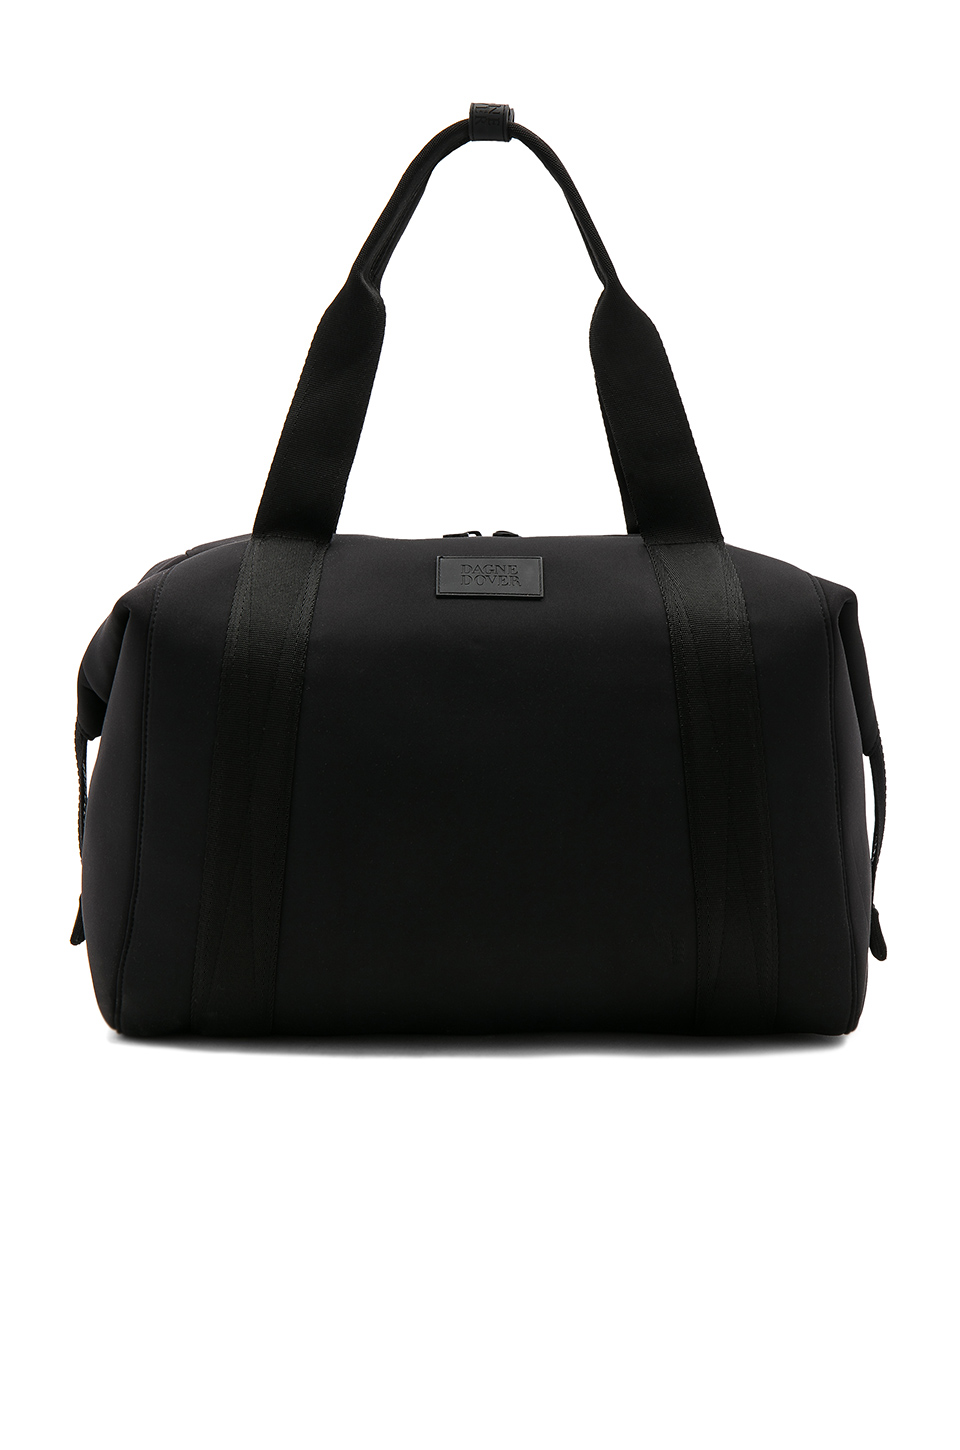 DAGNE DOVER The Landon Large Carryall in Onyx